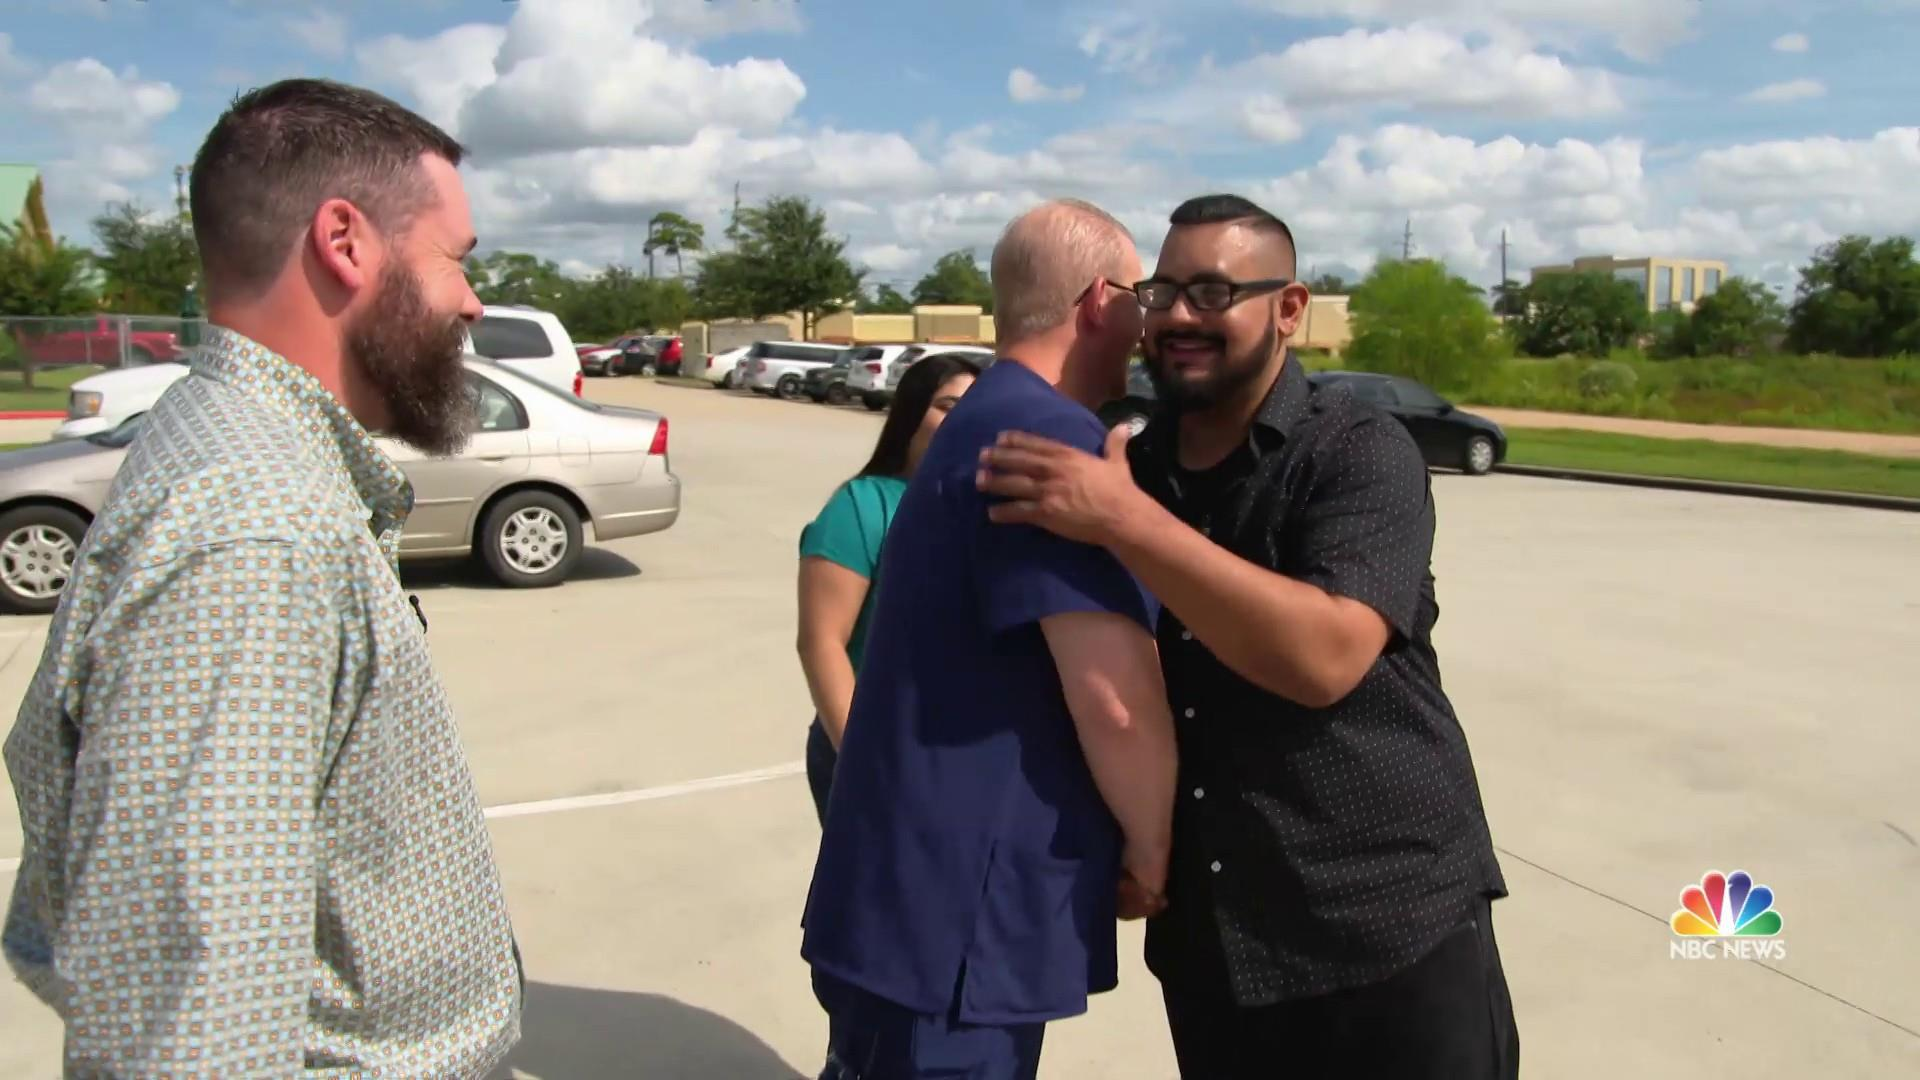 Lightning strike survivor meets the good Samaritans who saved his life